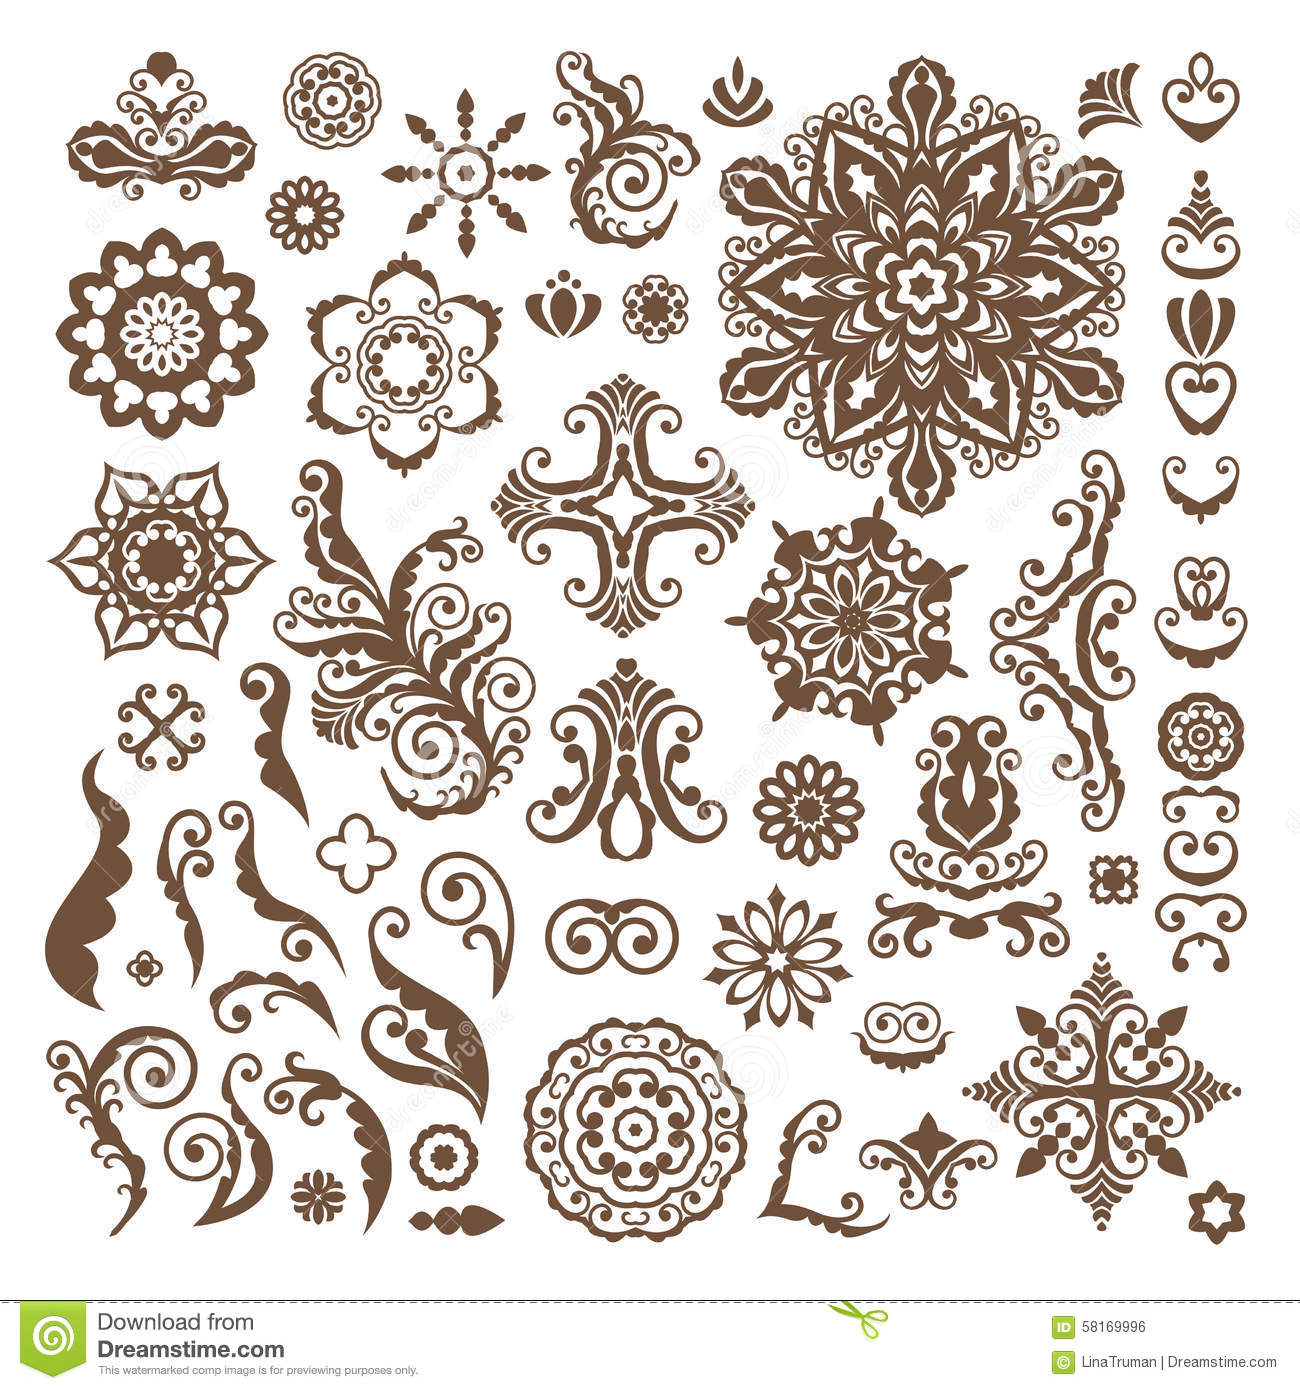 Abstract Flower Background With Decoration Elements For: Abstract Floral Illustration Design Elements On White